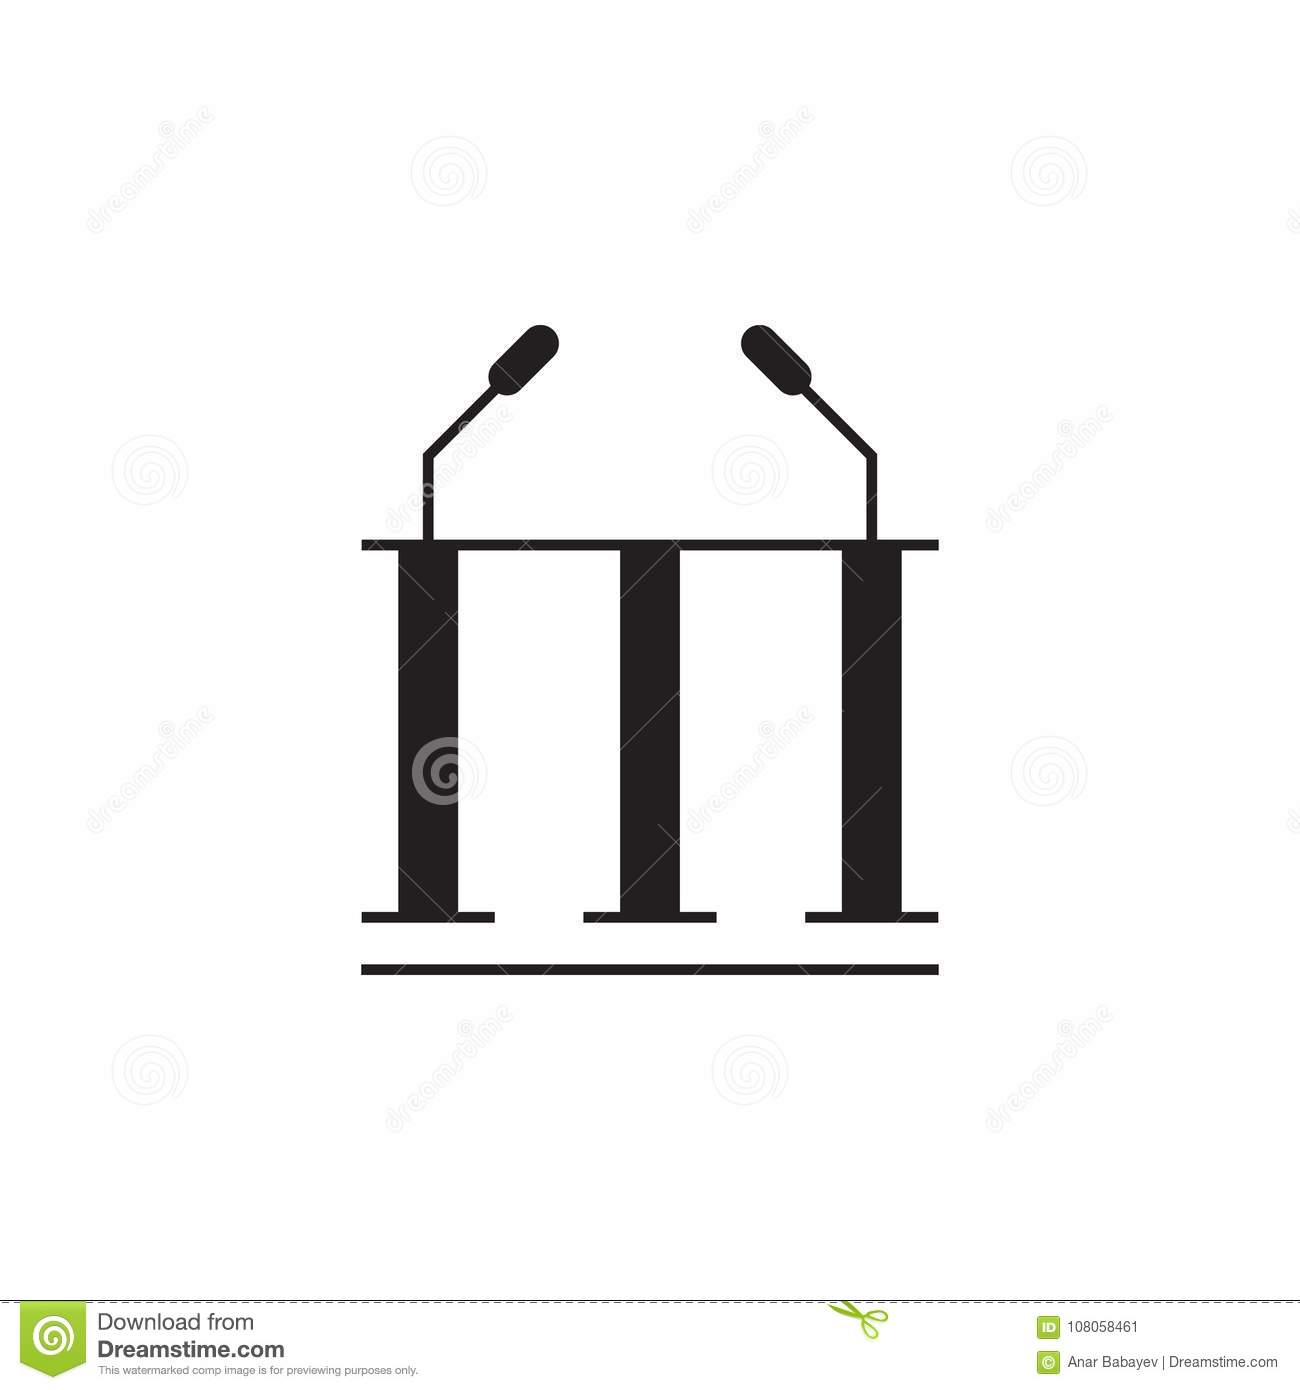 Speaker Symbol Circuit Voltage Source Symbols With Simple Microphone Free Magnificent Schematic Gallery Wiring Diagram